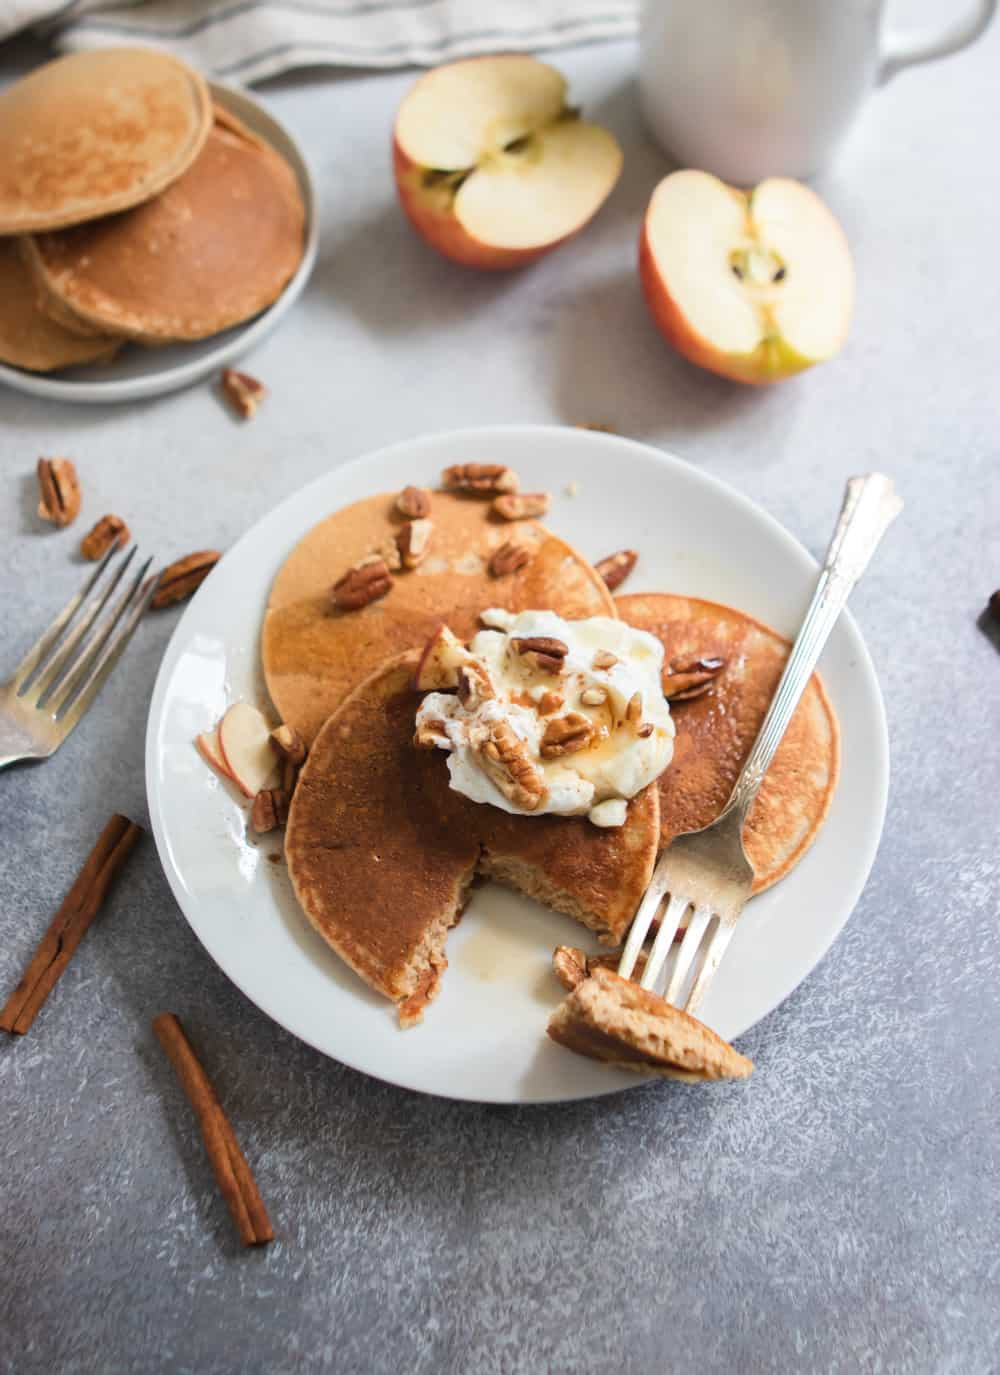 Apple oatmeal pancakes with maple syrup, pecans and yogurt.